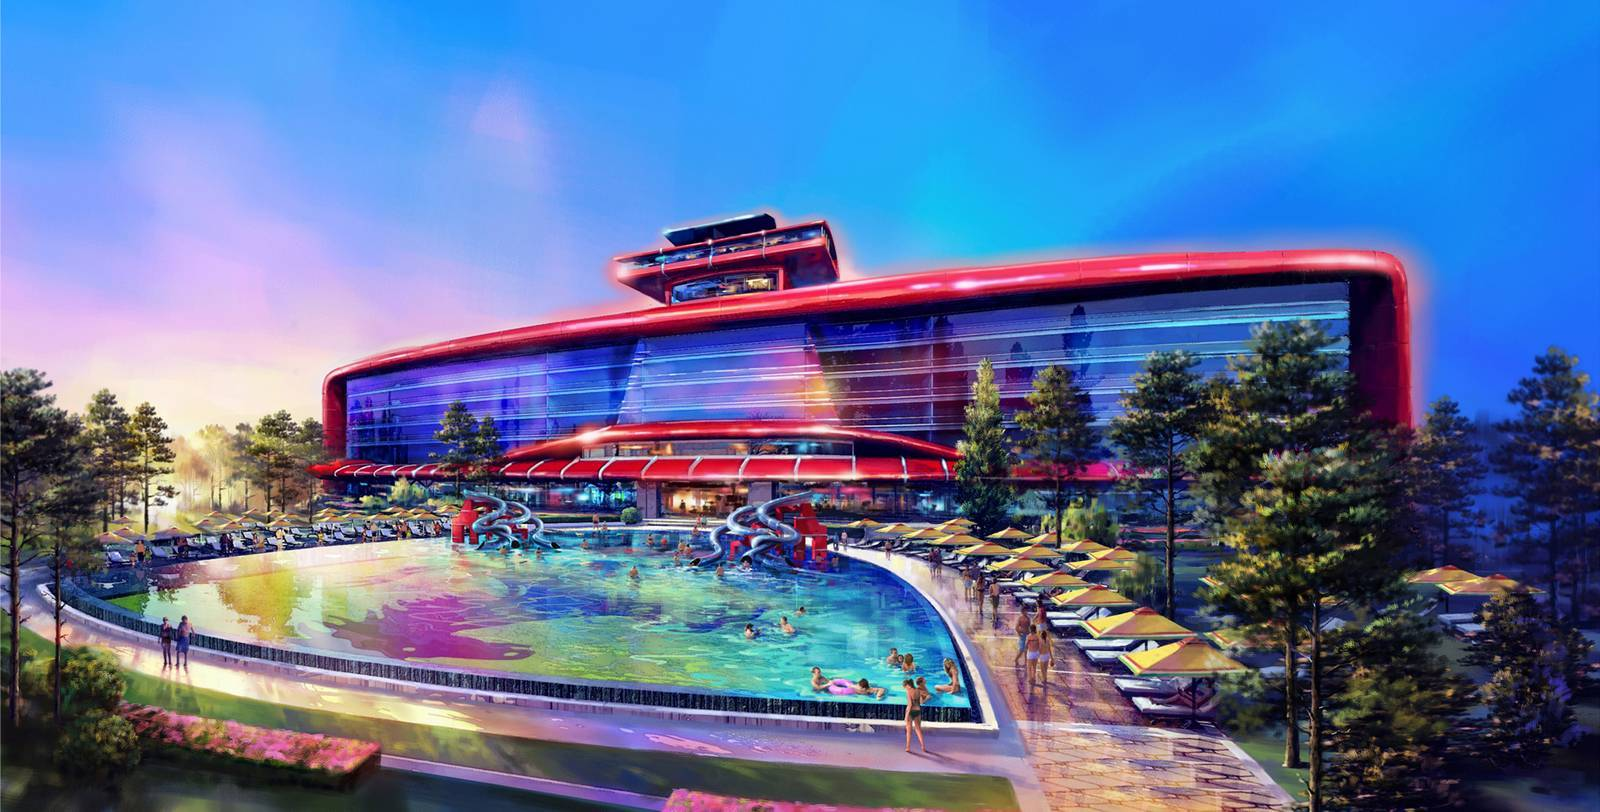 Ferrari To Open Theme Park And 5 Star Hotel In Spain Hashtag Spain